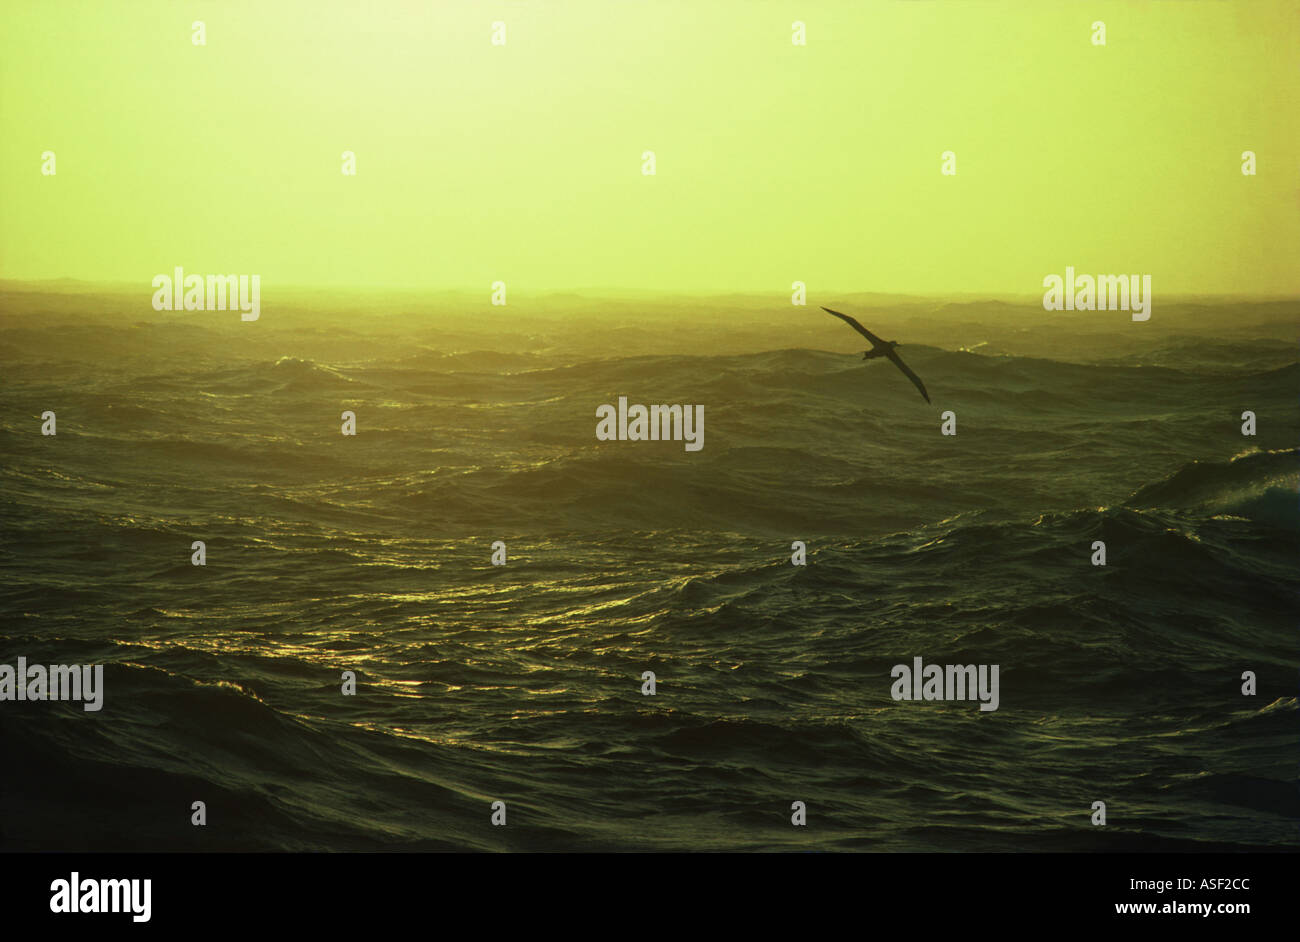 Wandering albatross soaring over turbulent seas at dusk Southern Ocean  - Stock Image